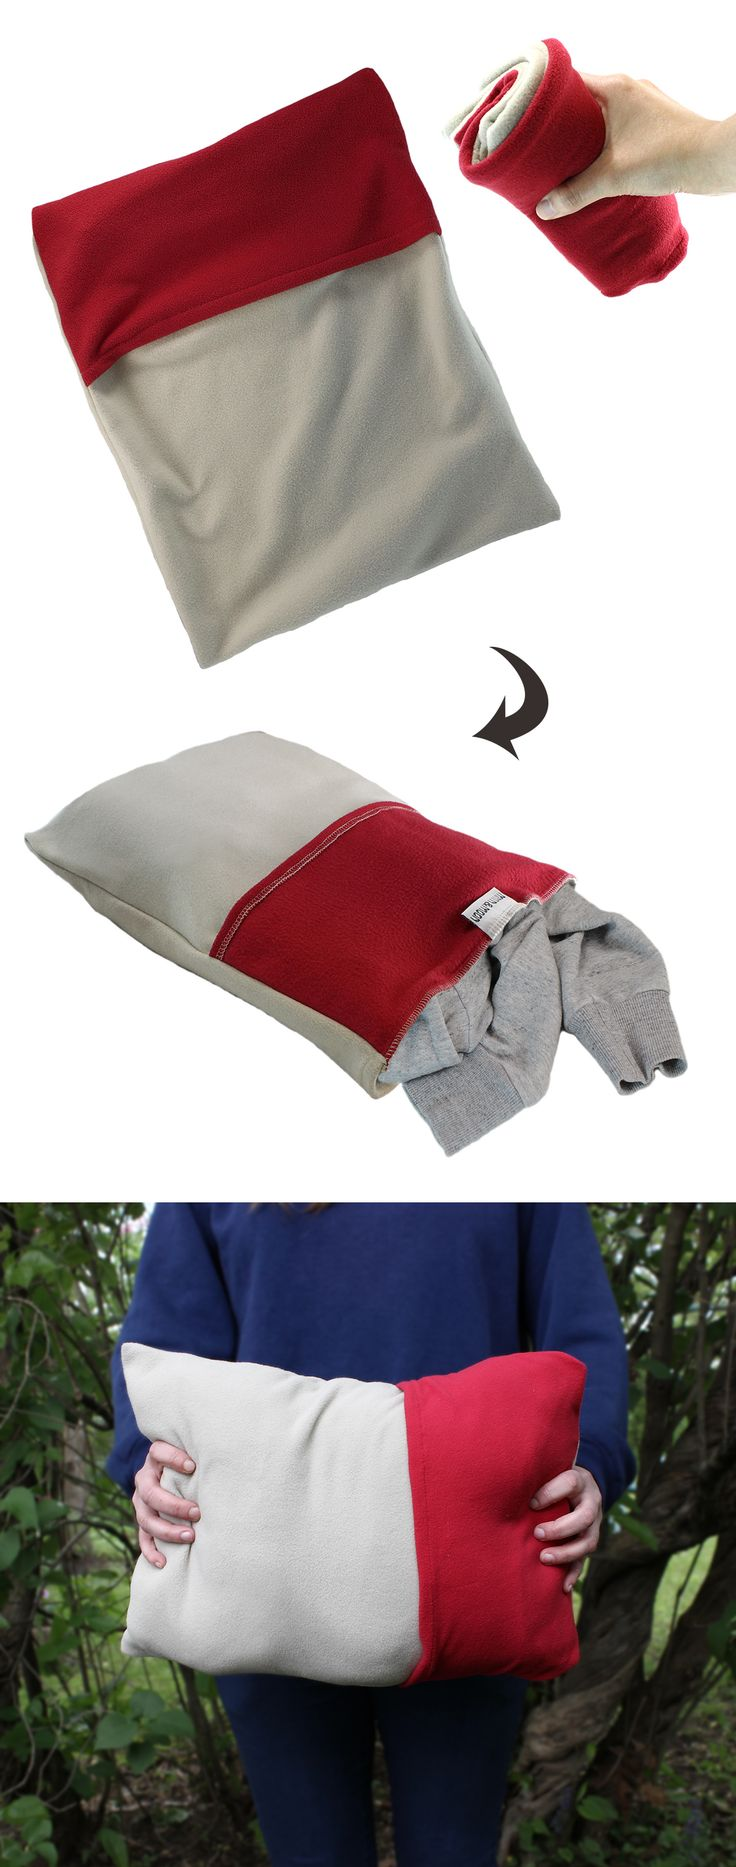 The Nomad Pillow Case by Mntn & Moon was made for the minimalist traveler. Simply stuff with spare clothing or jacket for an instant pillow! Perfect for backpacking or camping trips. Bring one with you on planes and trains!